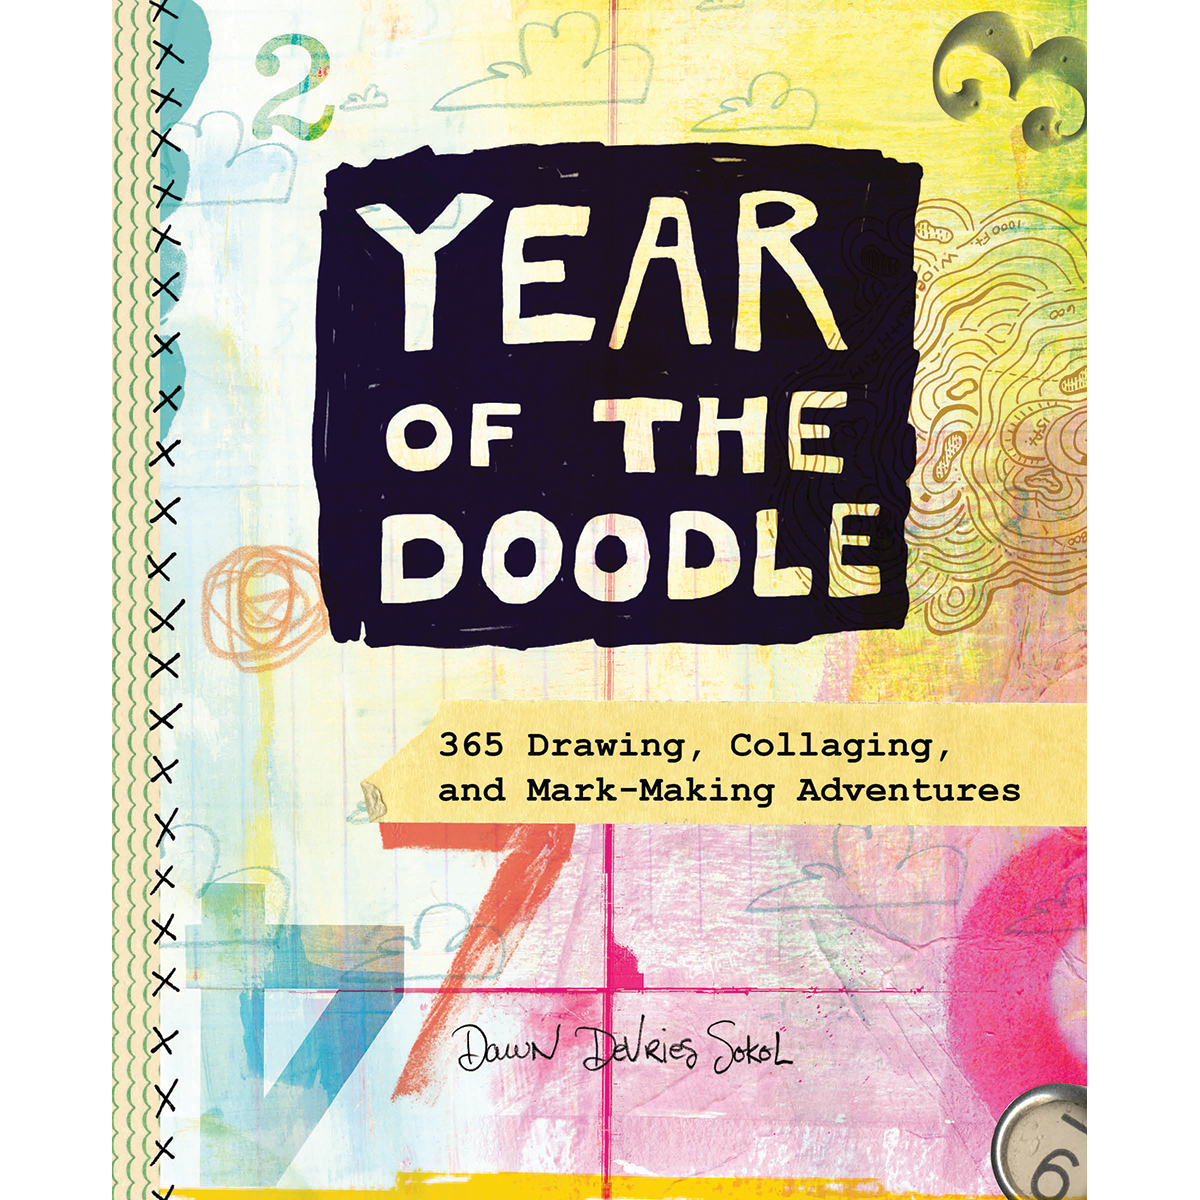 Year of the Doodle: 365 Drawing, Collaging and Mark-Making Adventures